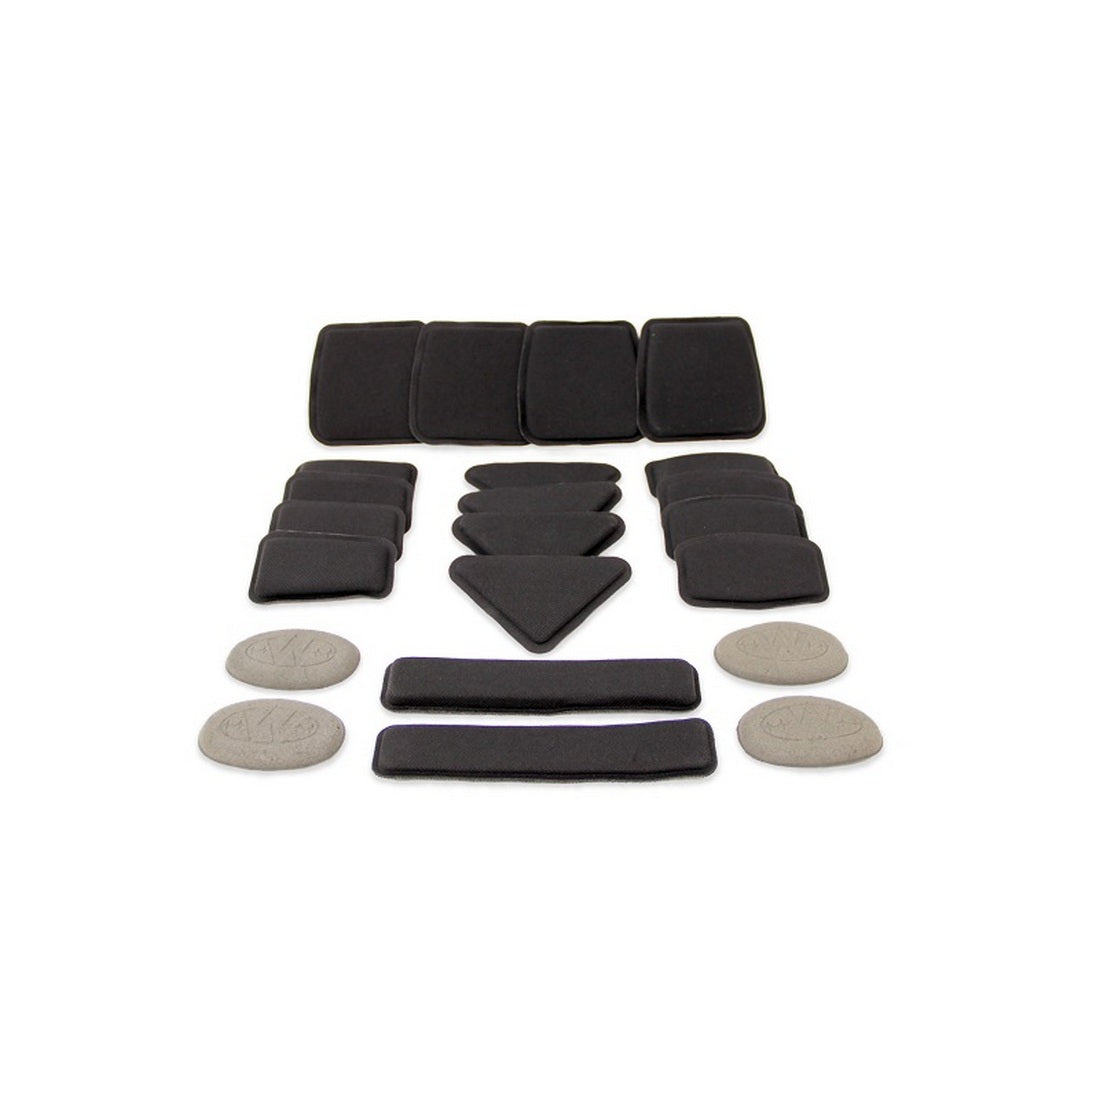 EPIC Helmet Liner Comfort Pad Replacement Set